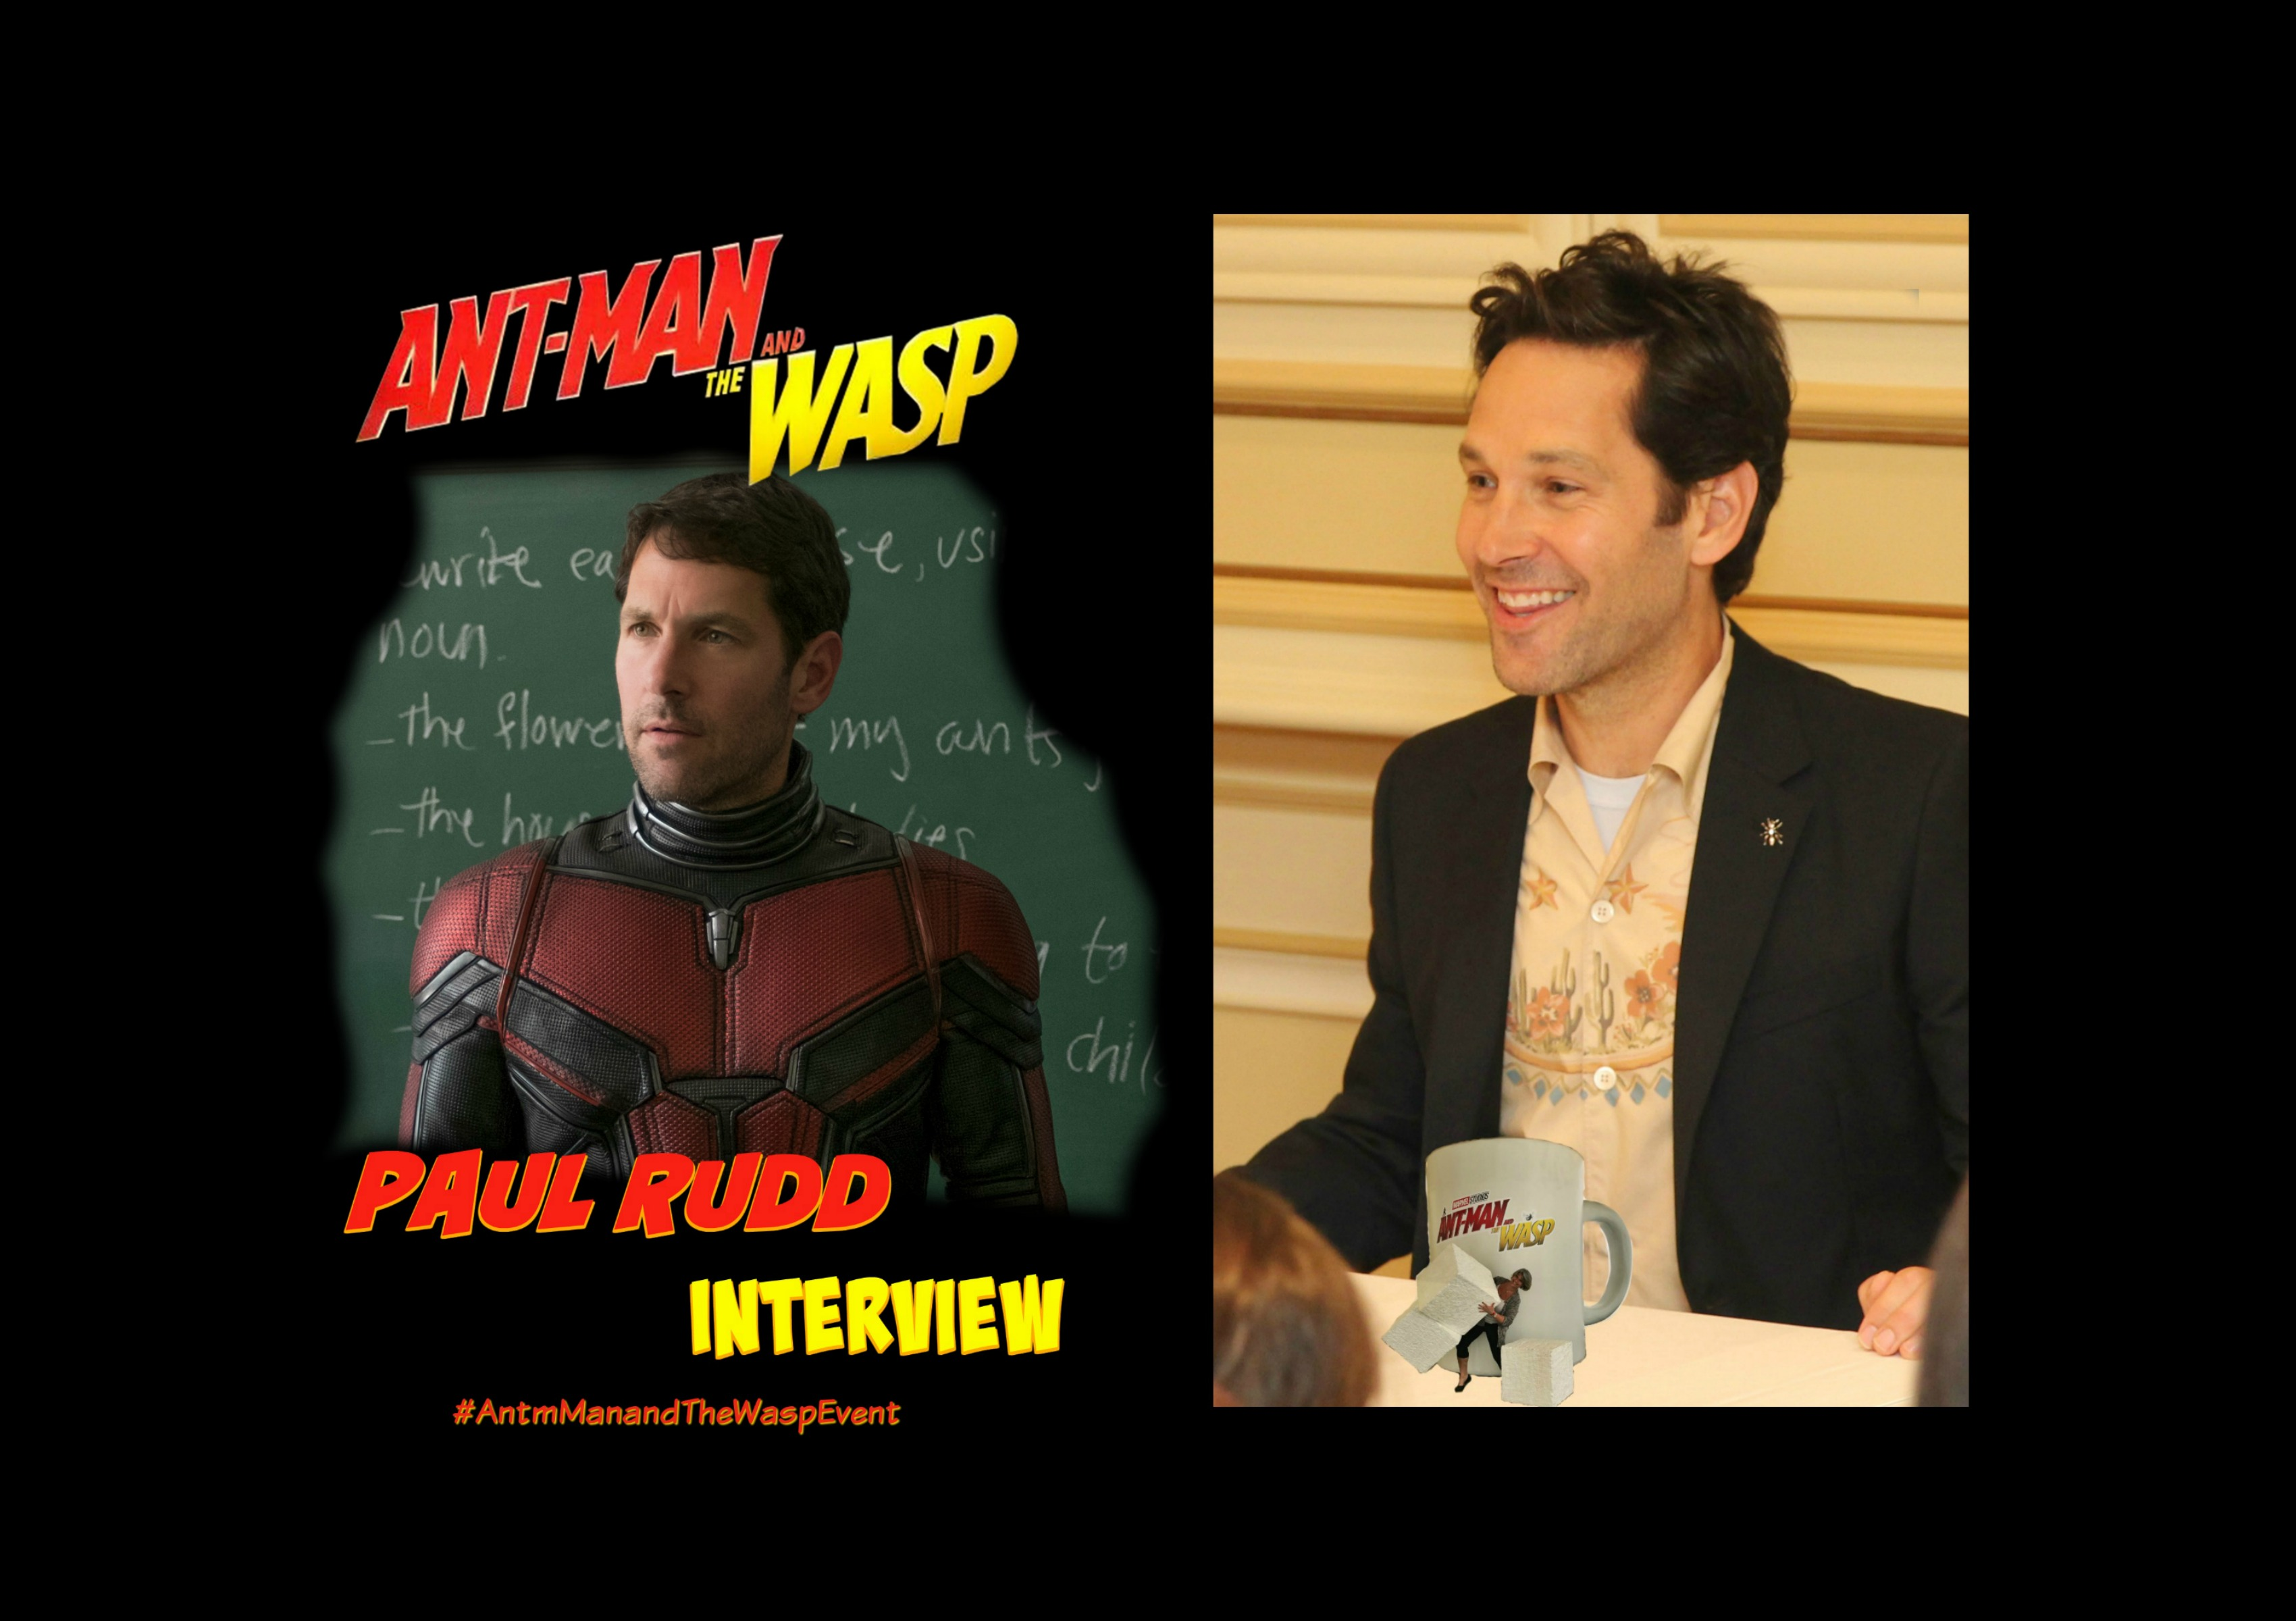 Paul Rudd Ant-Man and The Wasp Interview-3